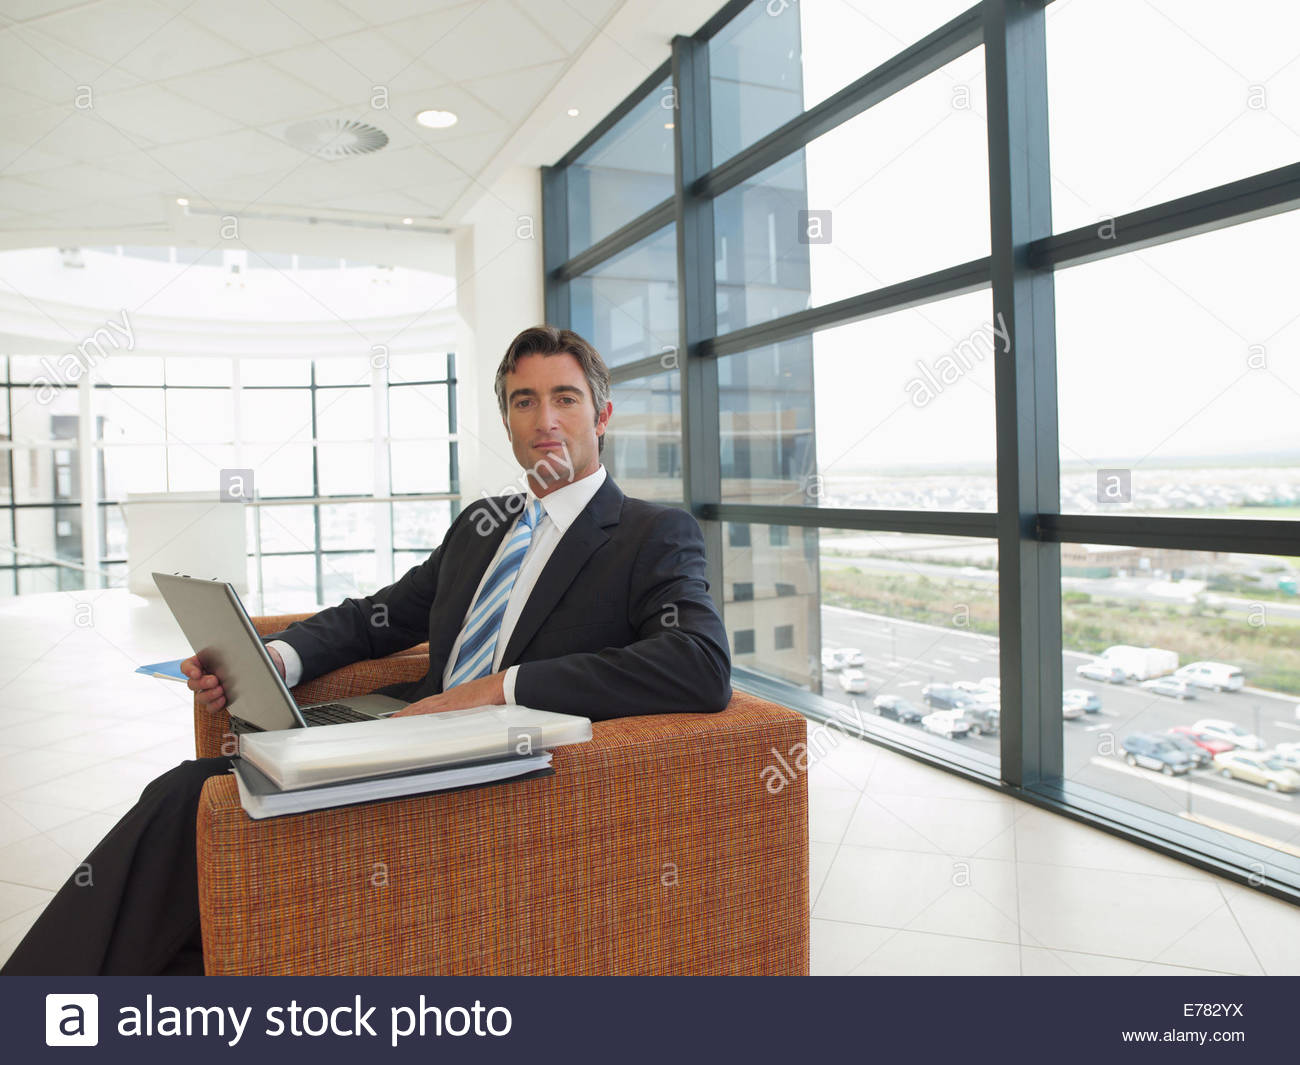 Businessman working in office zone d'attente Photo Stock